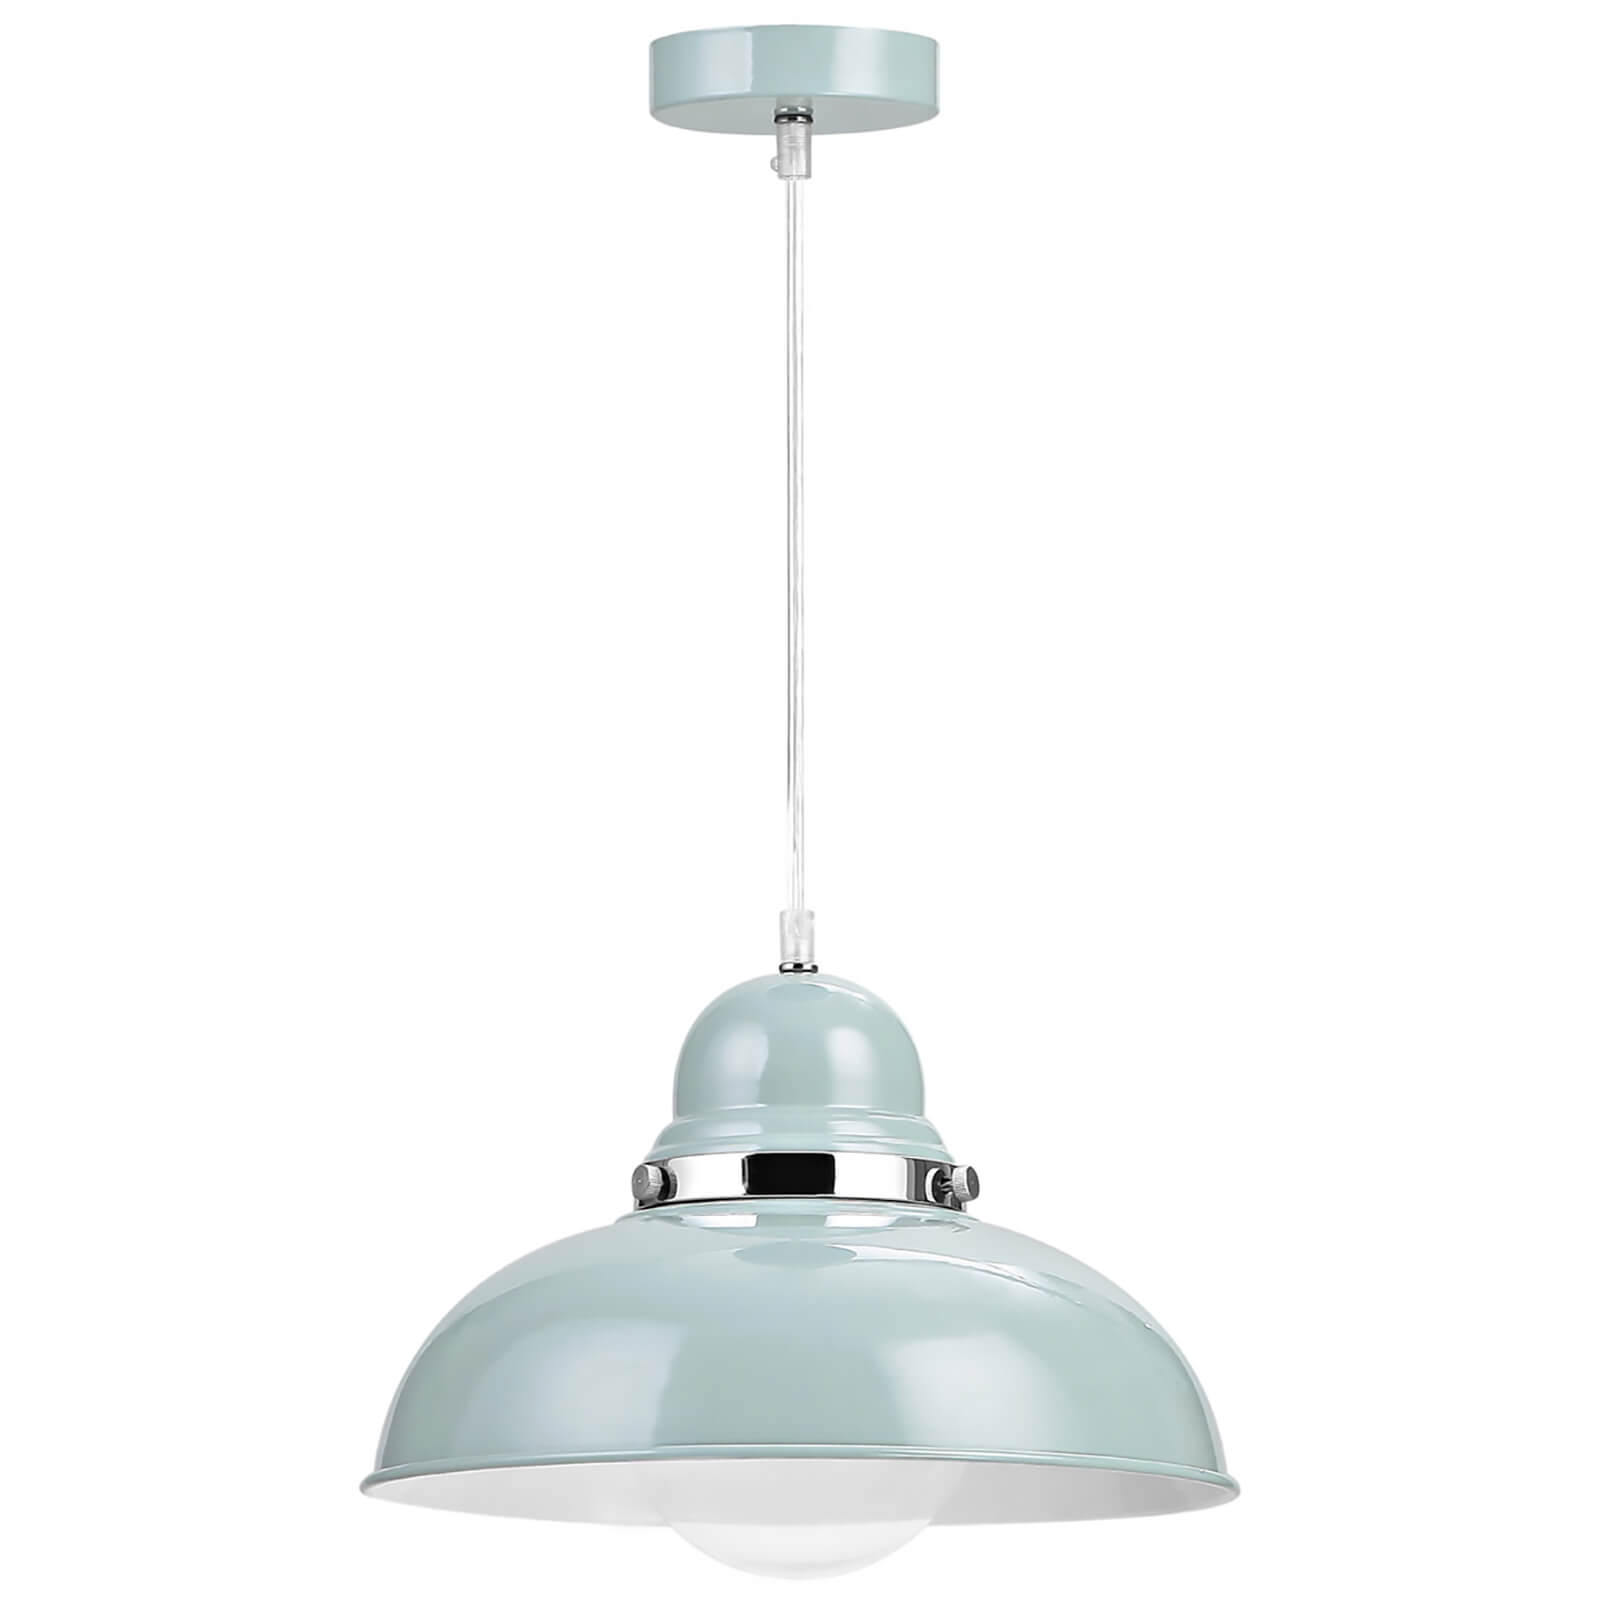 Fifty Five South Vermont Pendant Light - Shutter Blue